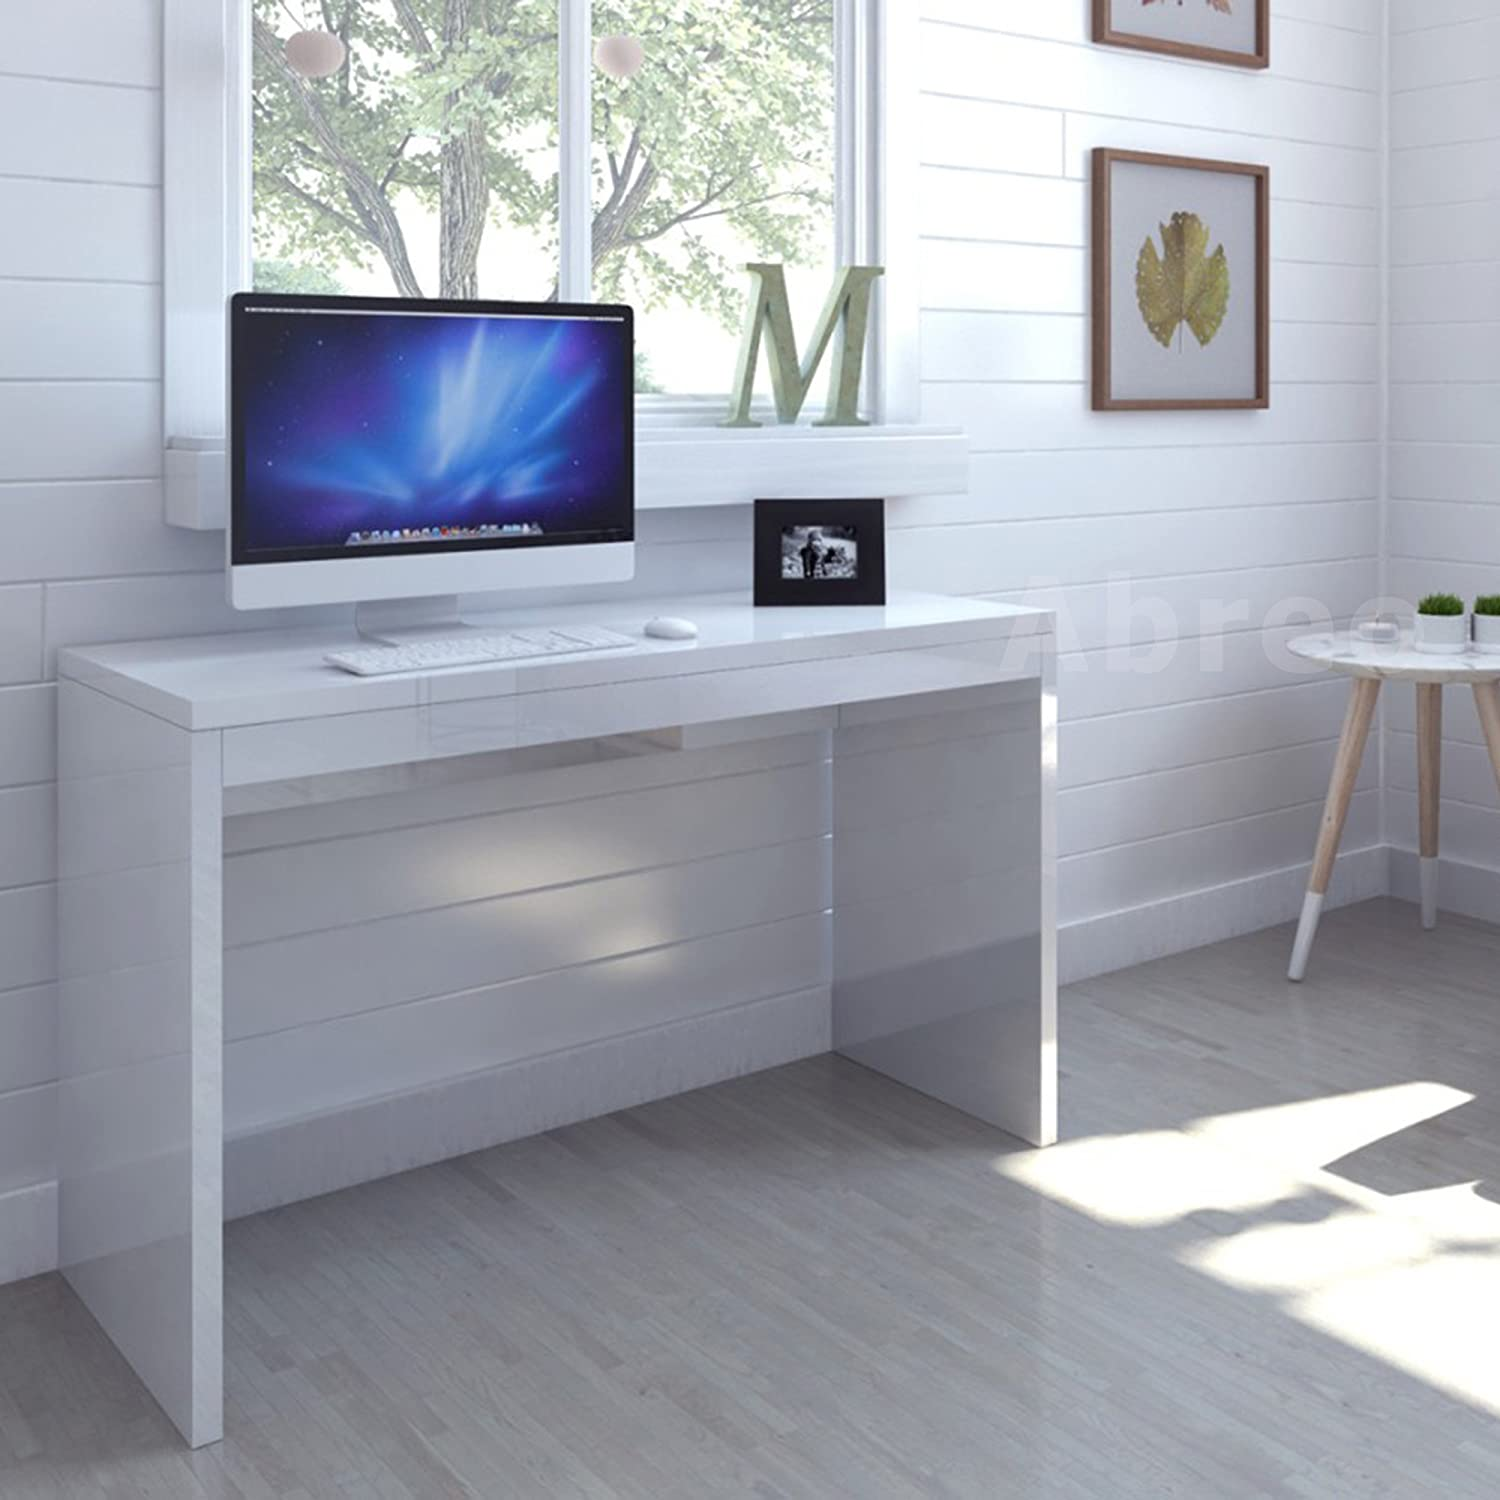 office table for home. Modern High Gloss White Home Office Desk Computer PC Table Workstation (White): Amazon.co.uk: Kitchen \u0026 For